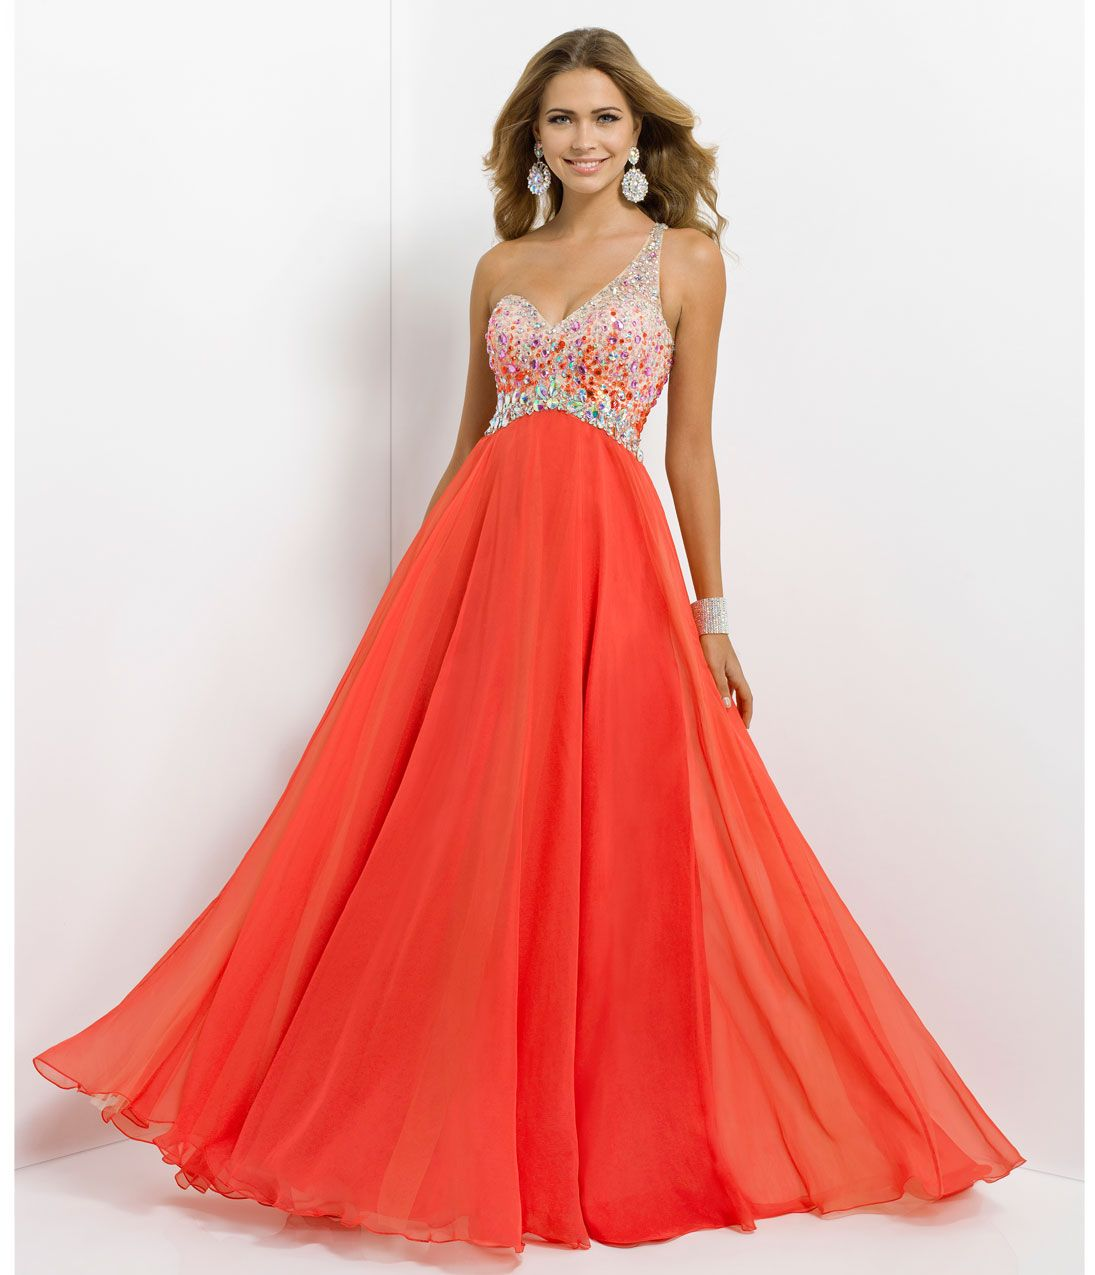 Blush prom dresses persimmon one shoulder jeweled prom gown